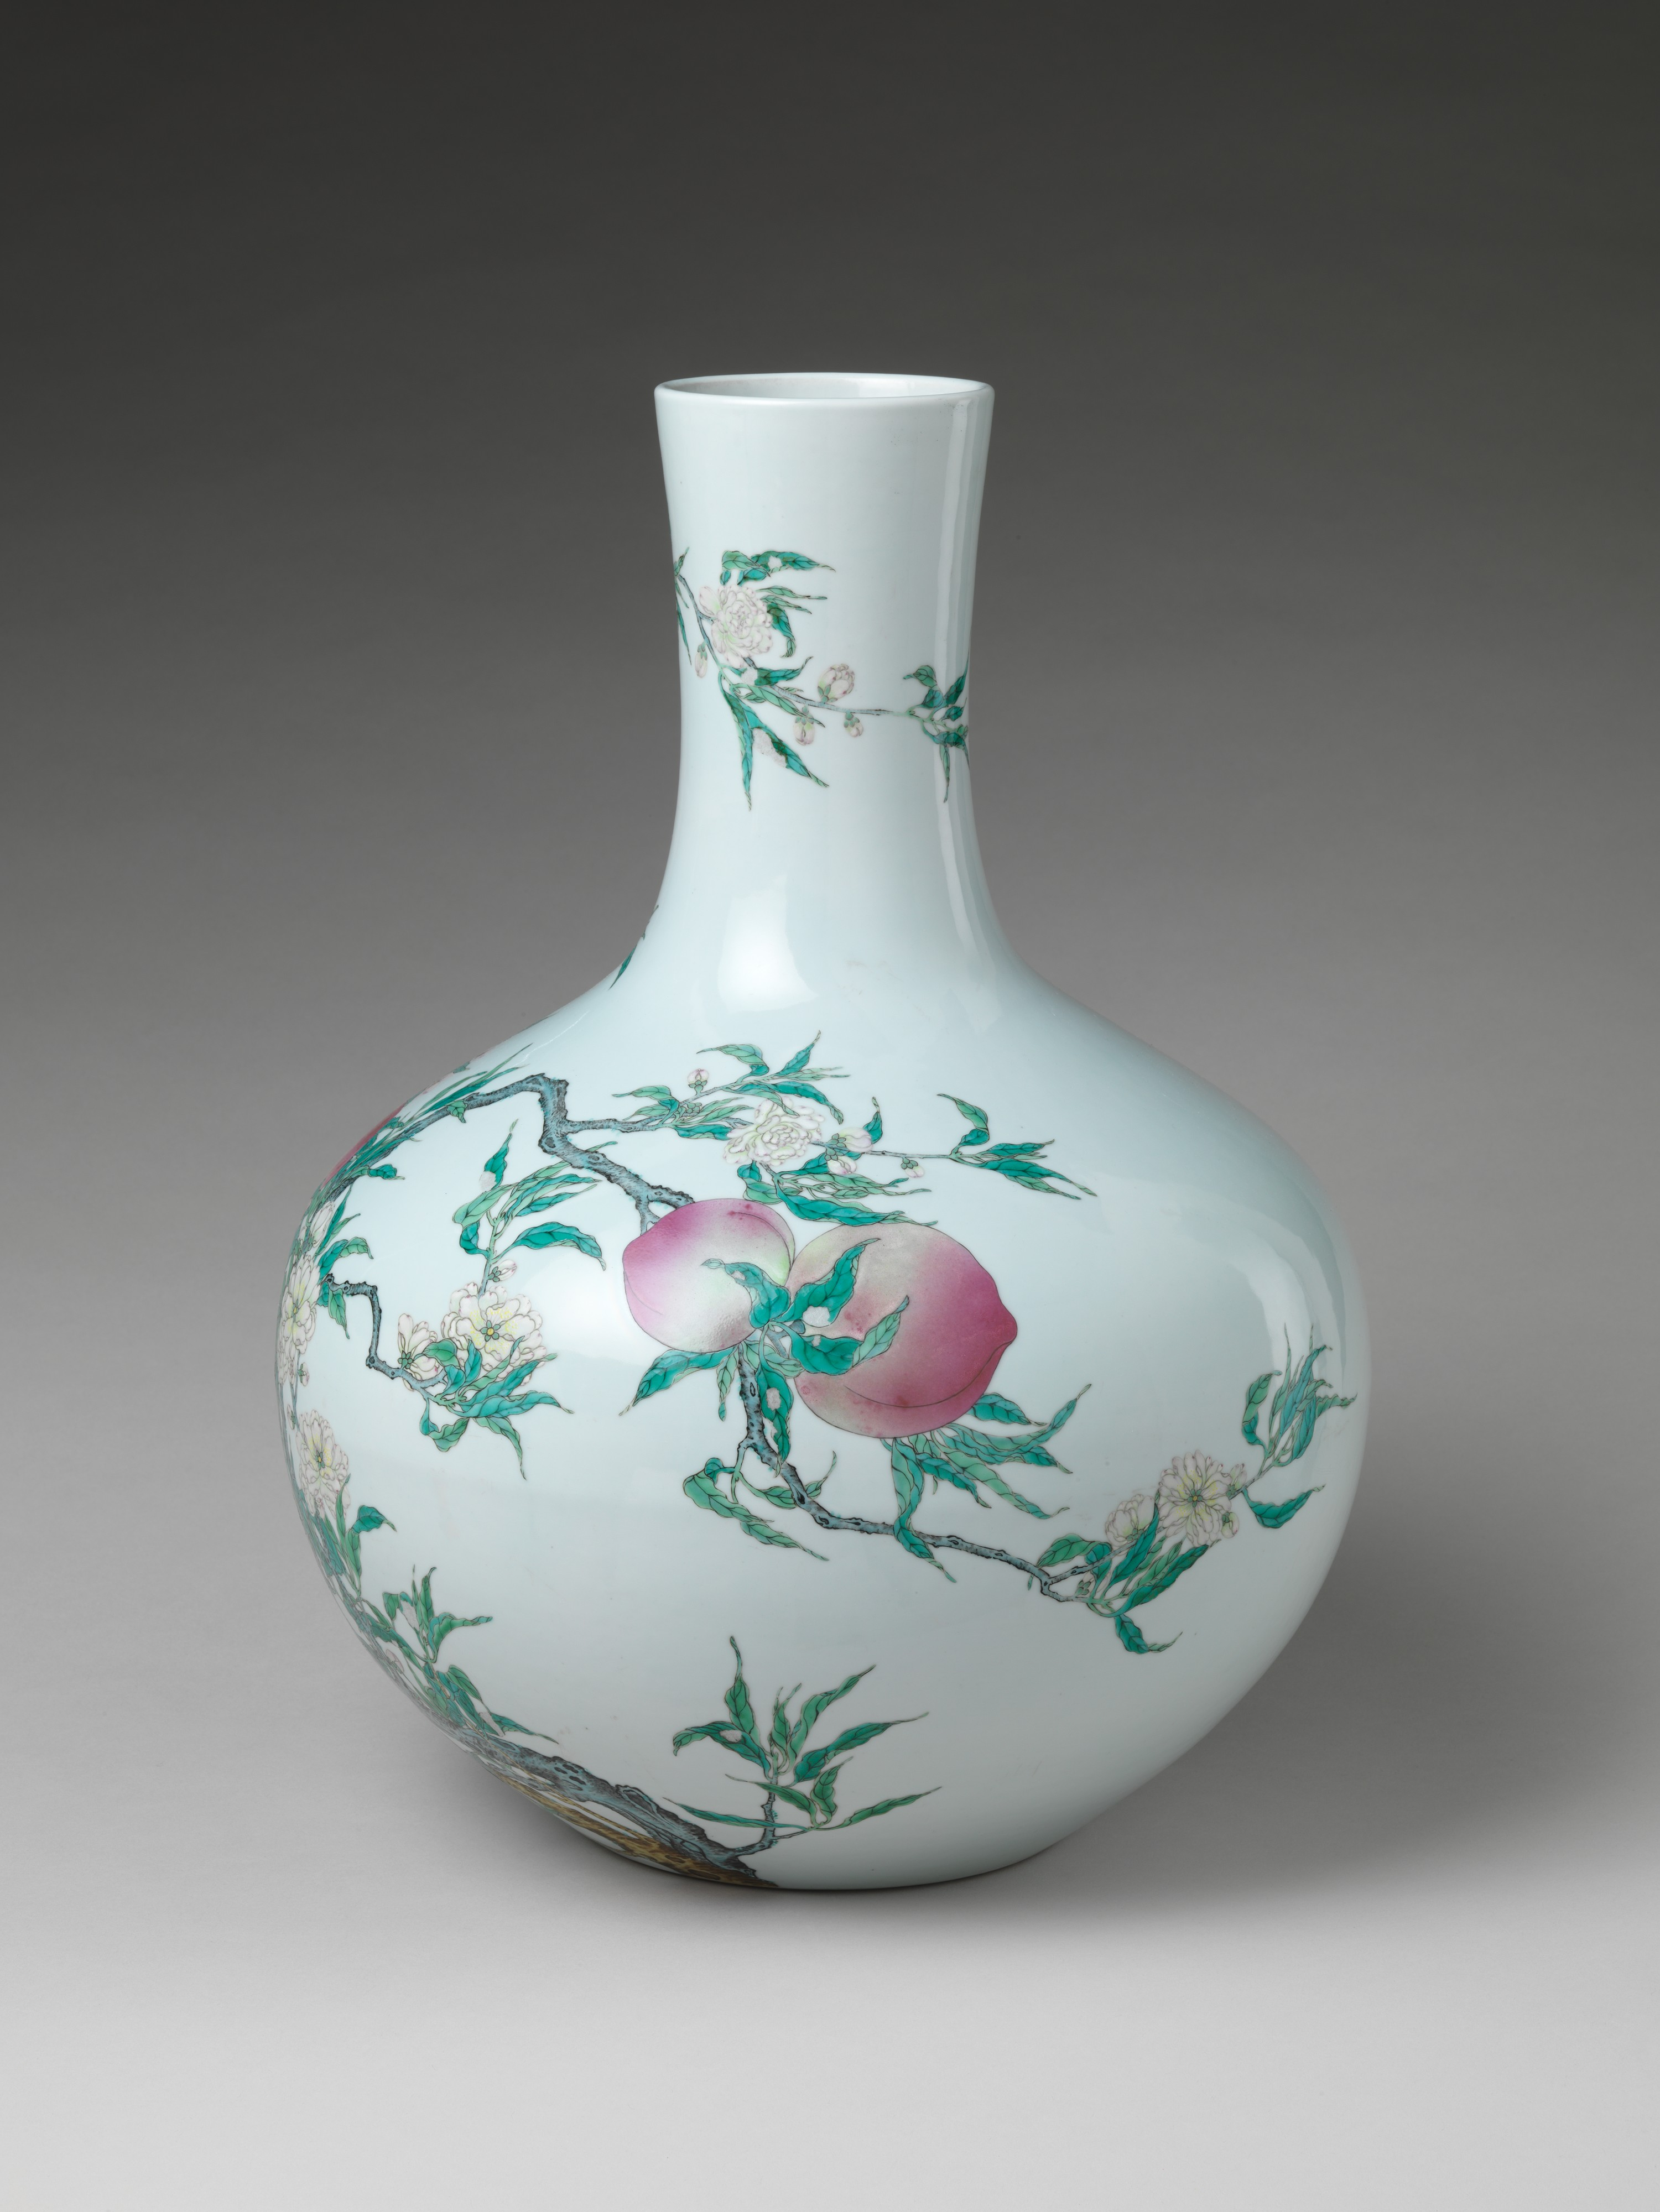 Vase with nine peaches china qing dynasty 16441911 share by email reviewsmspy